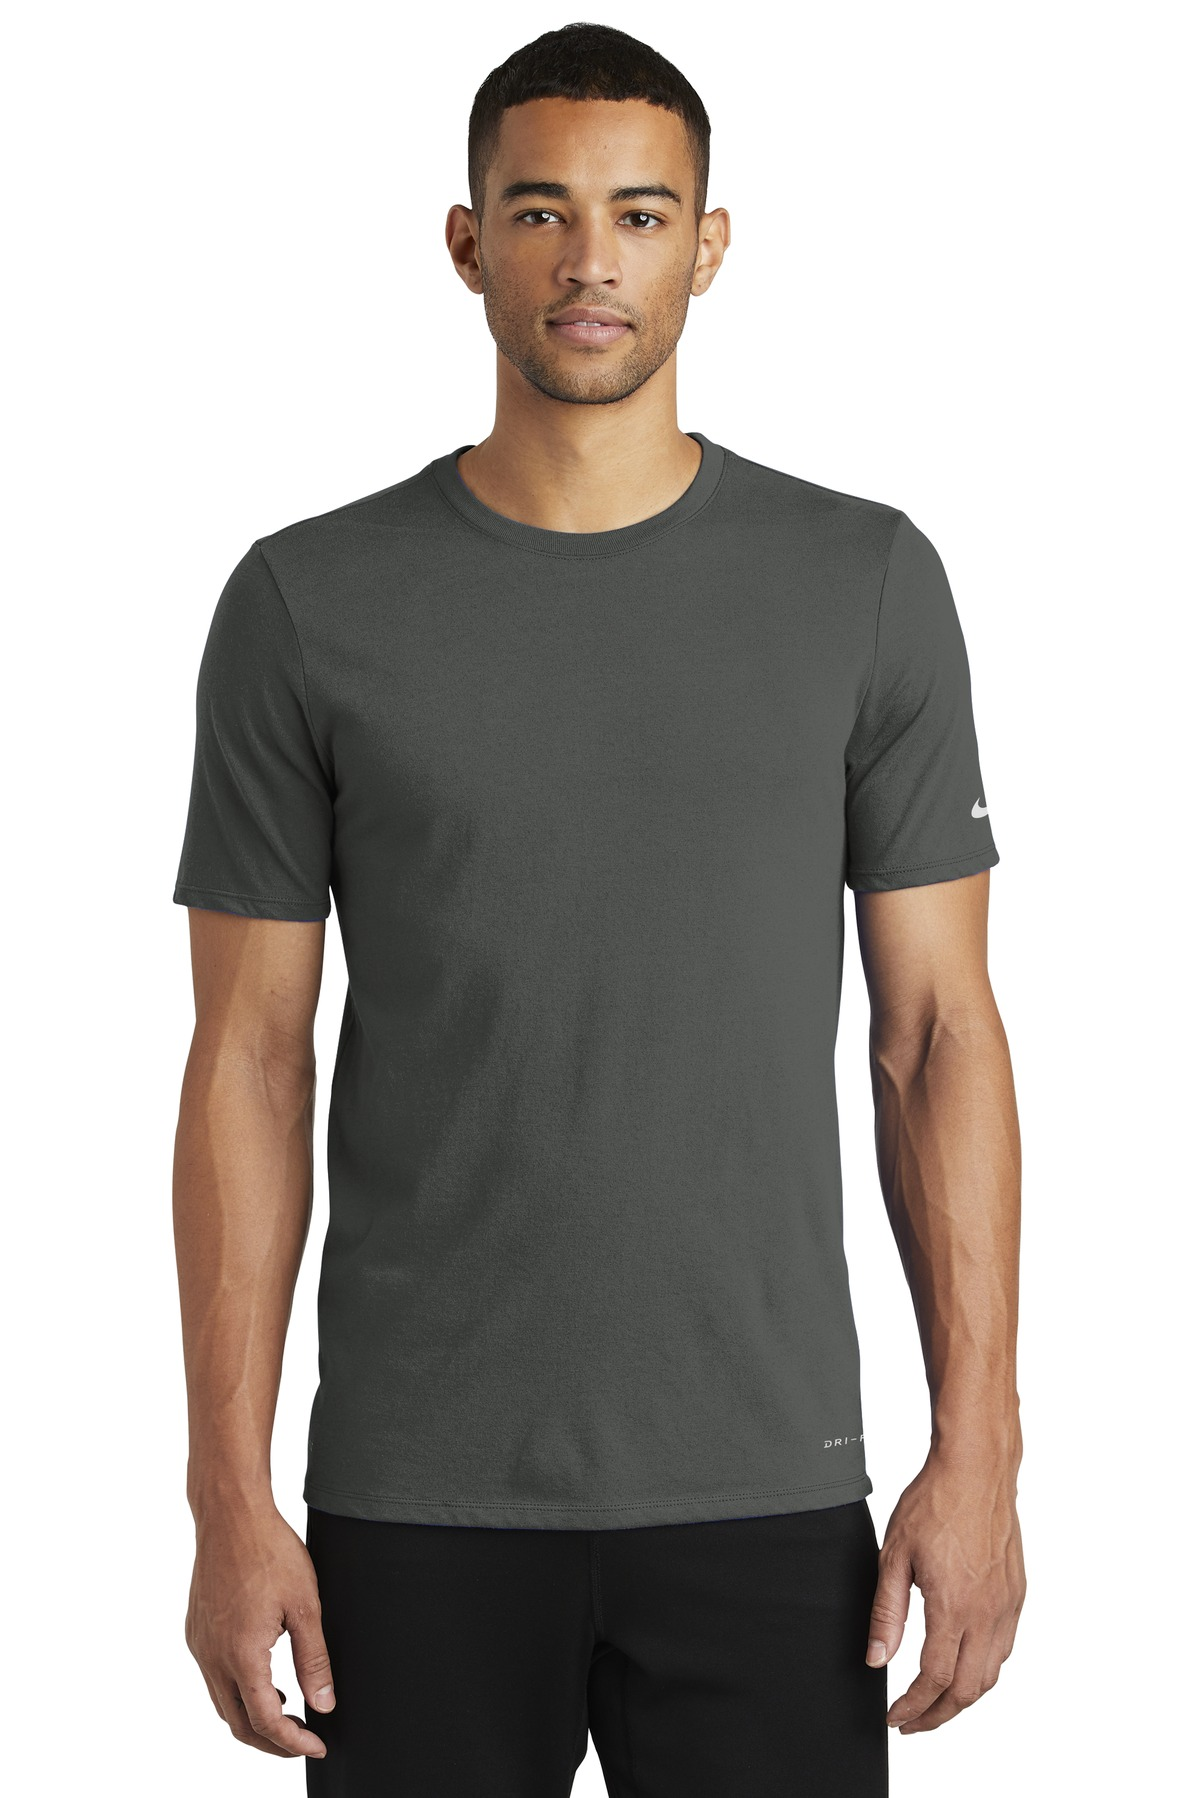 Nike Dri-FIT Cotton/Poly Tee. NKBQ5231 - Anthracite